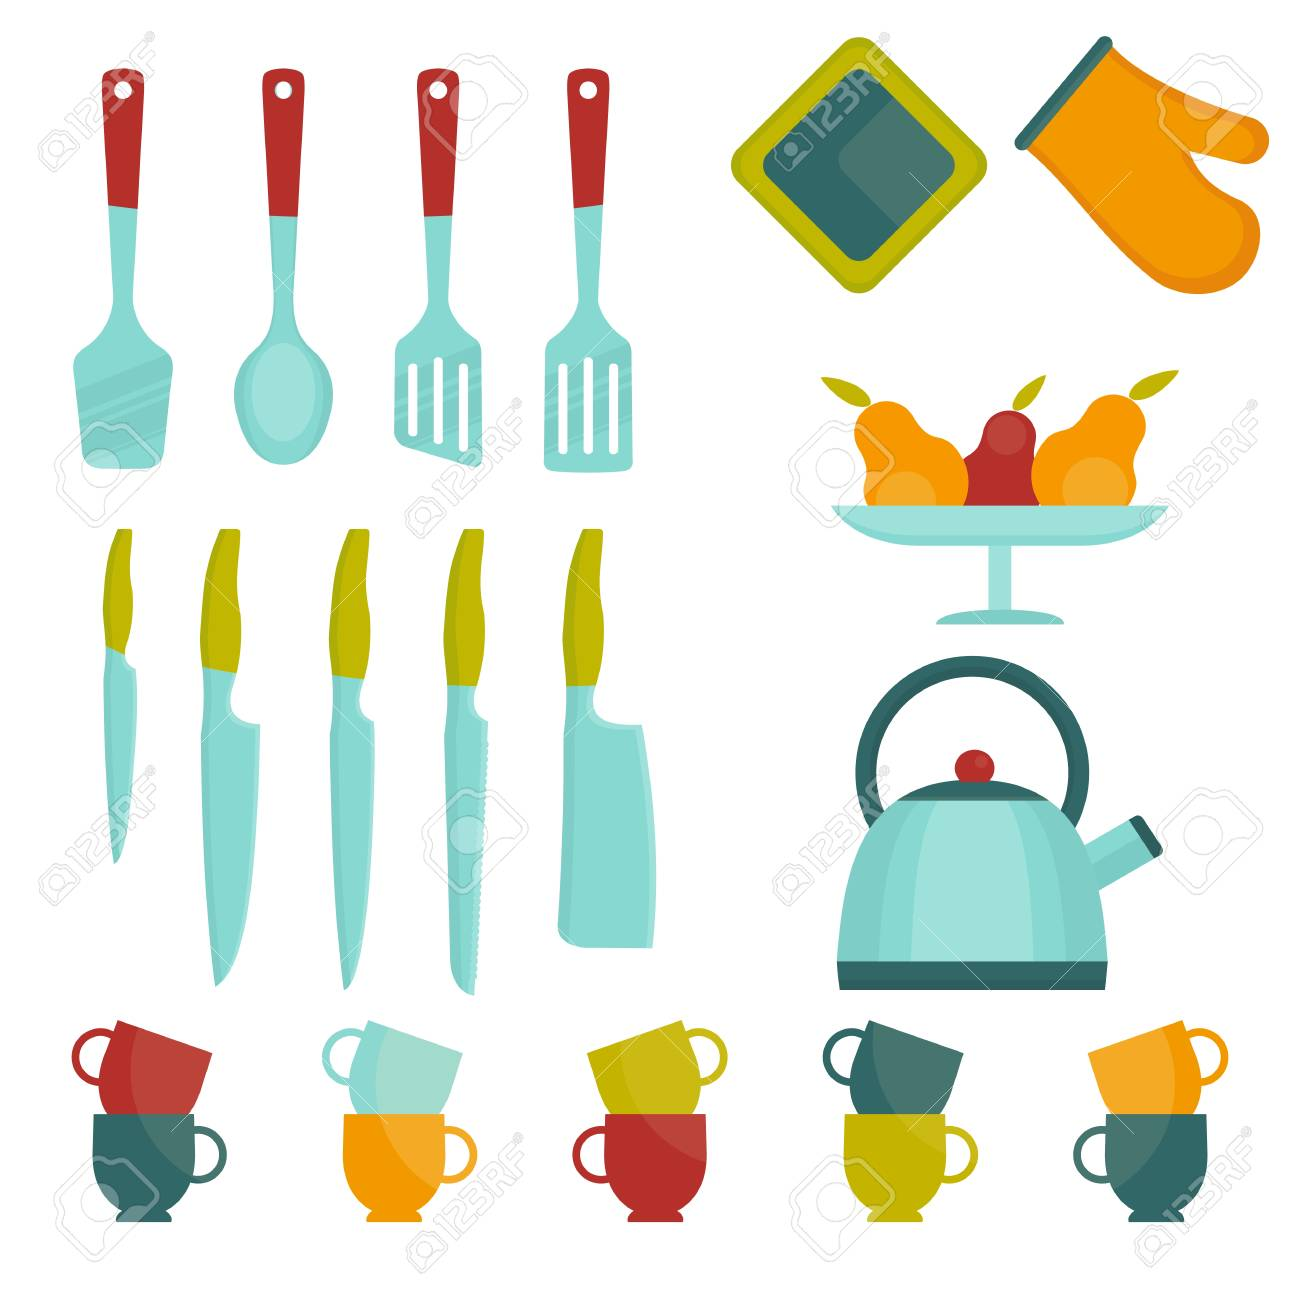 Set Of Bright Kitchen Utensils Kitchen Tools For Cooking Flat